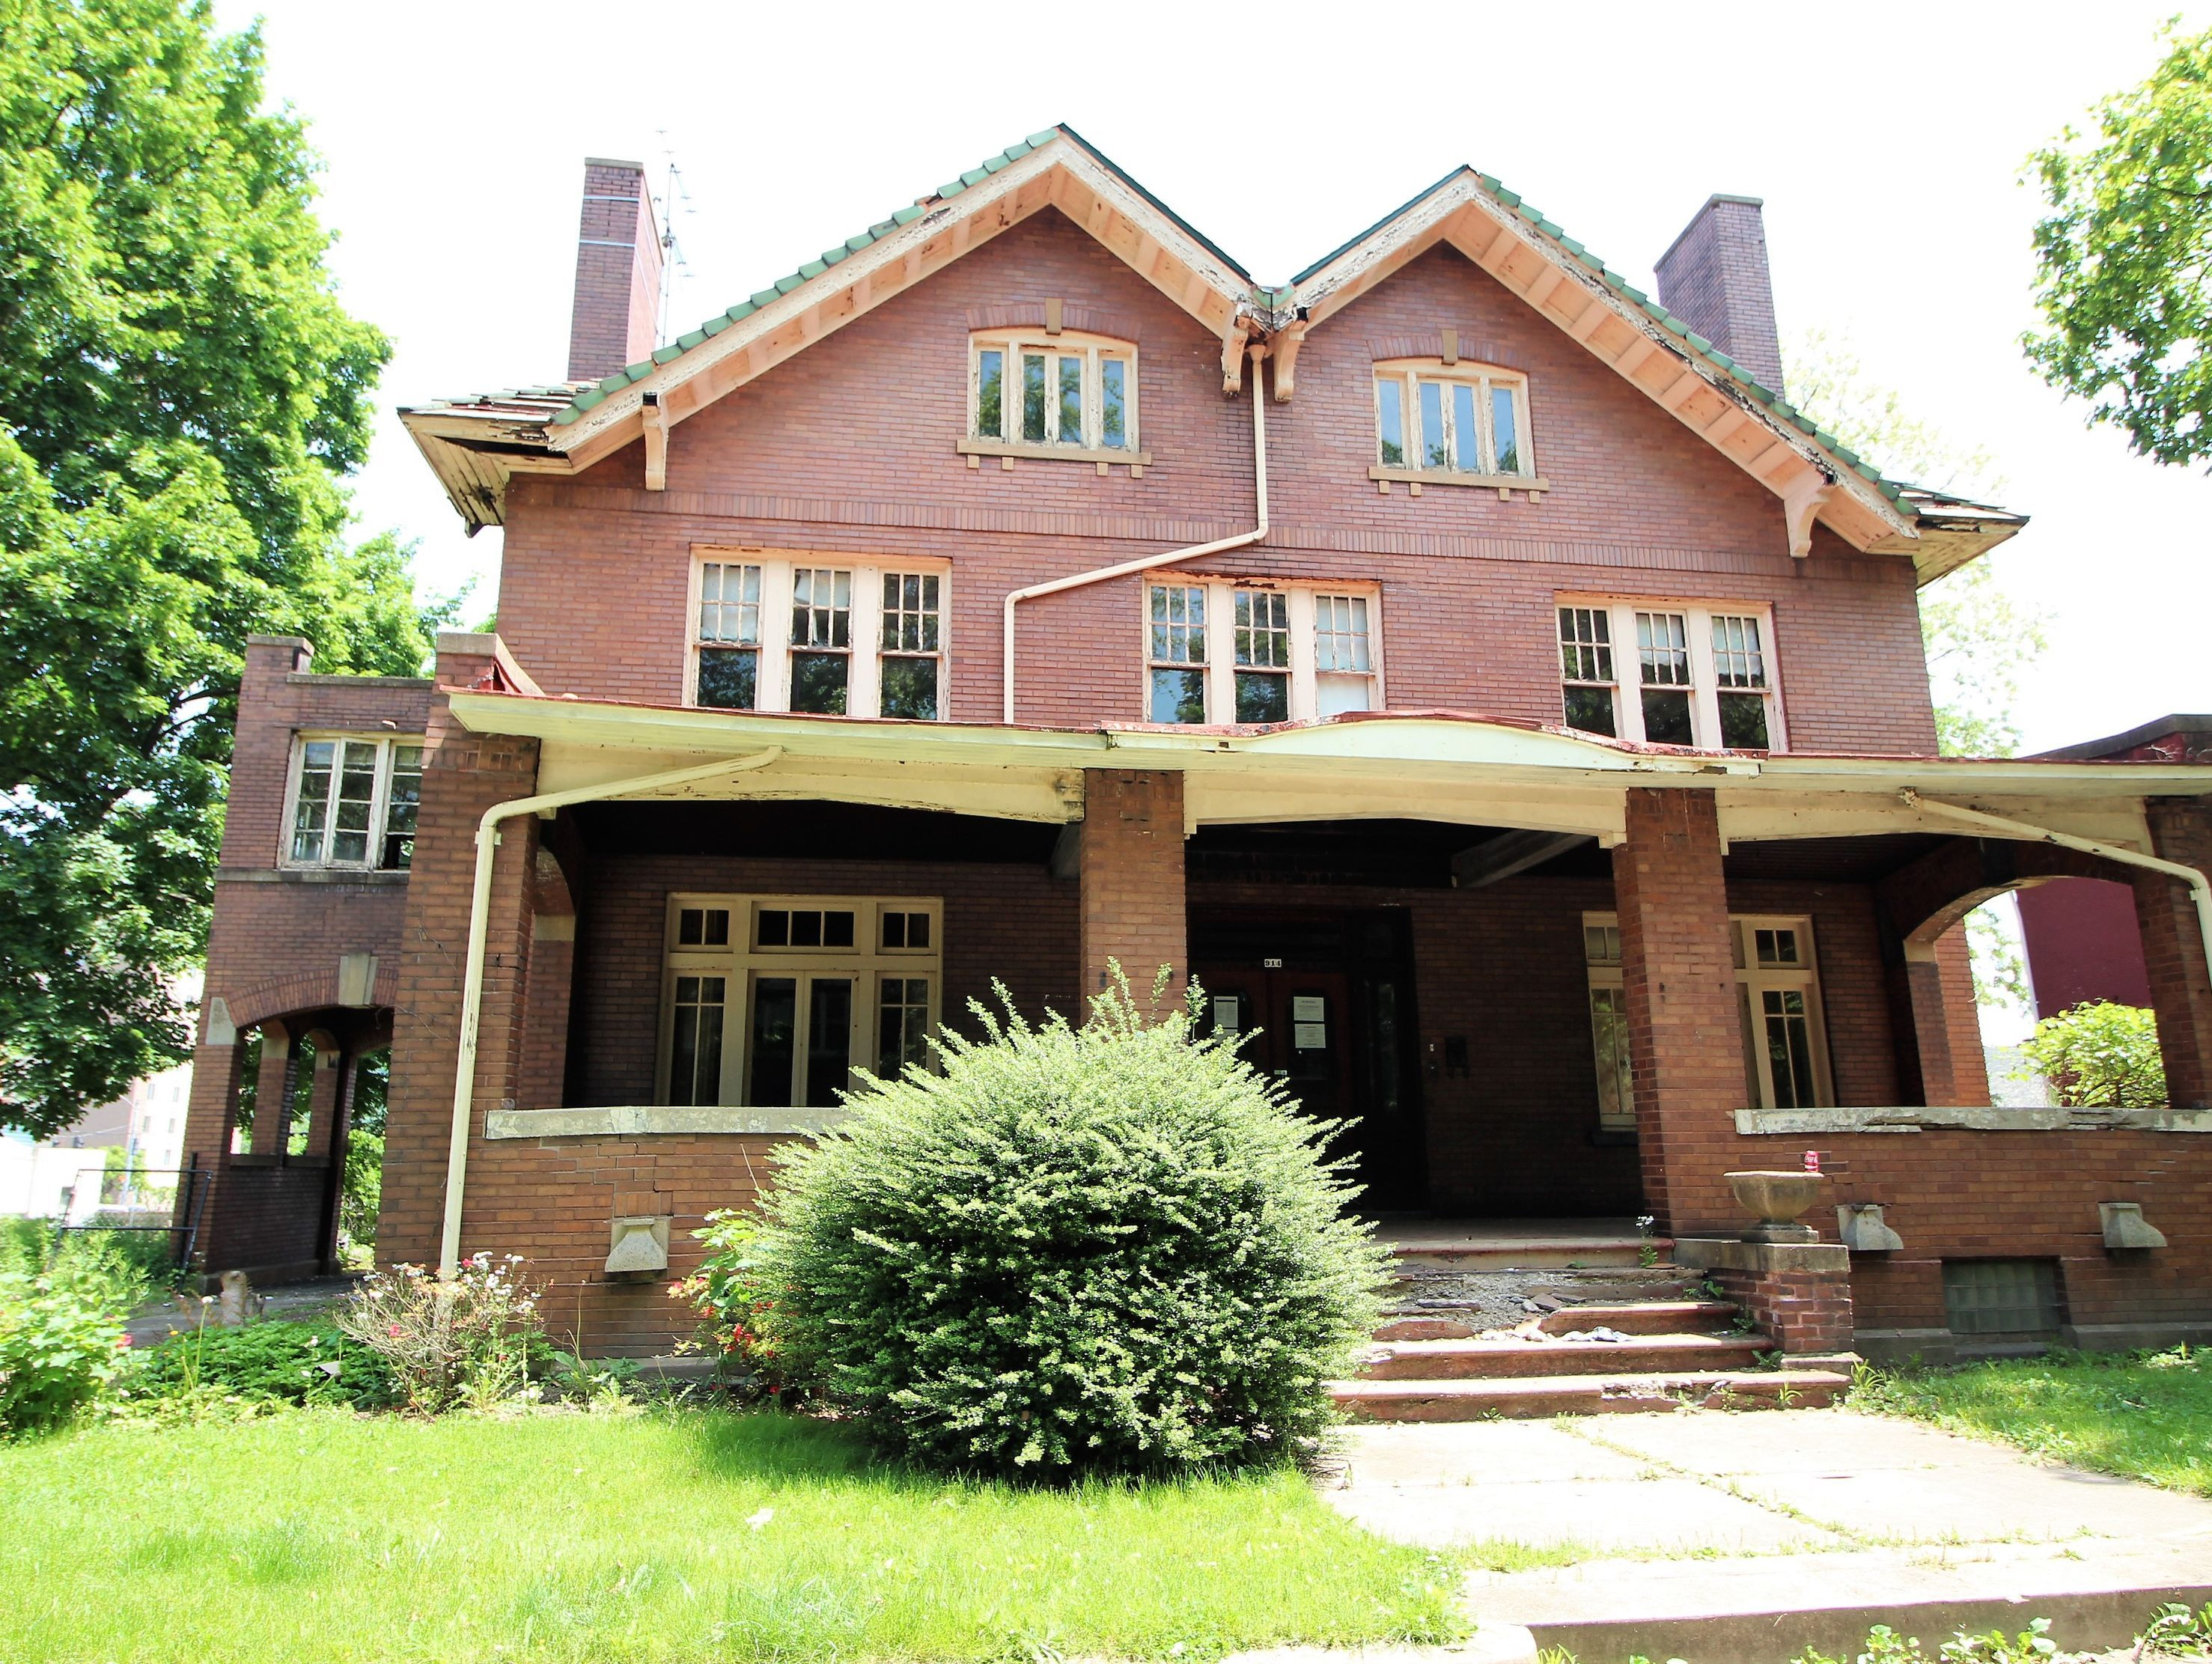 914 8th Ave BEAVER FALLS, PA 15010 Victorian houses for